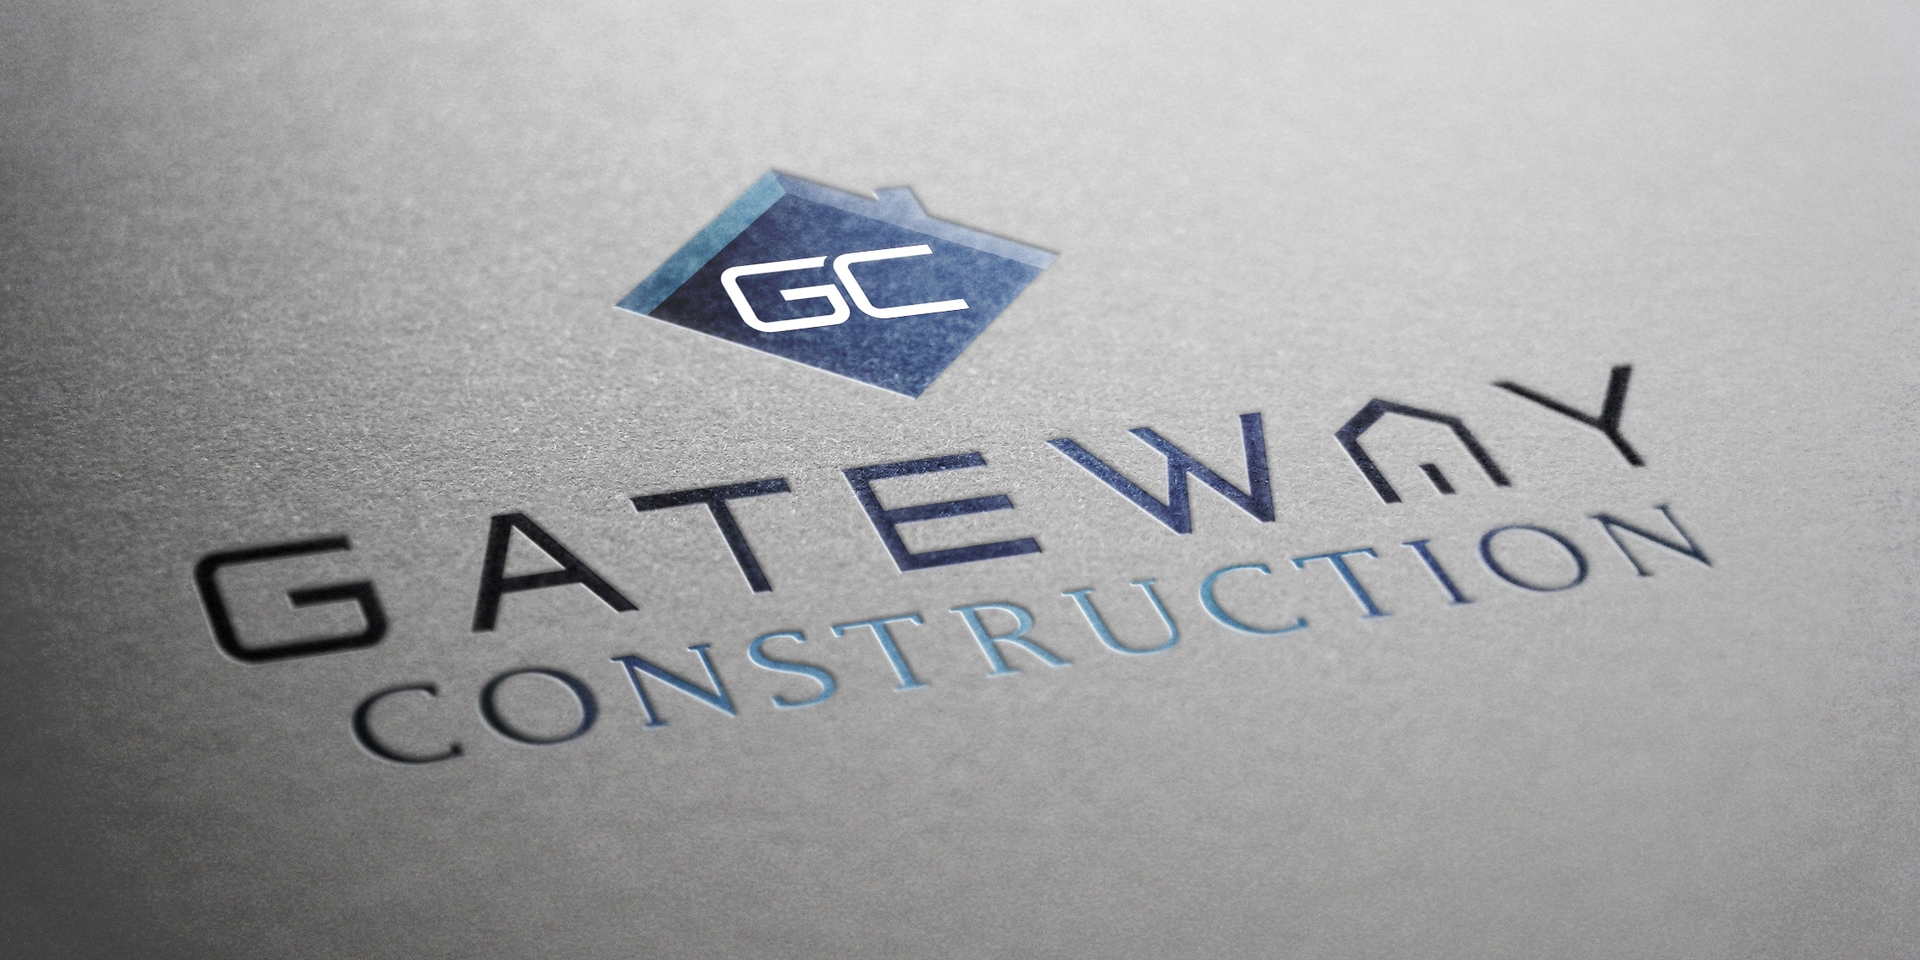 Branding for Gateway Construction